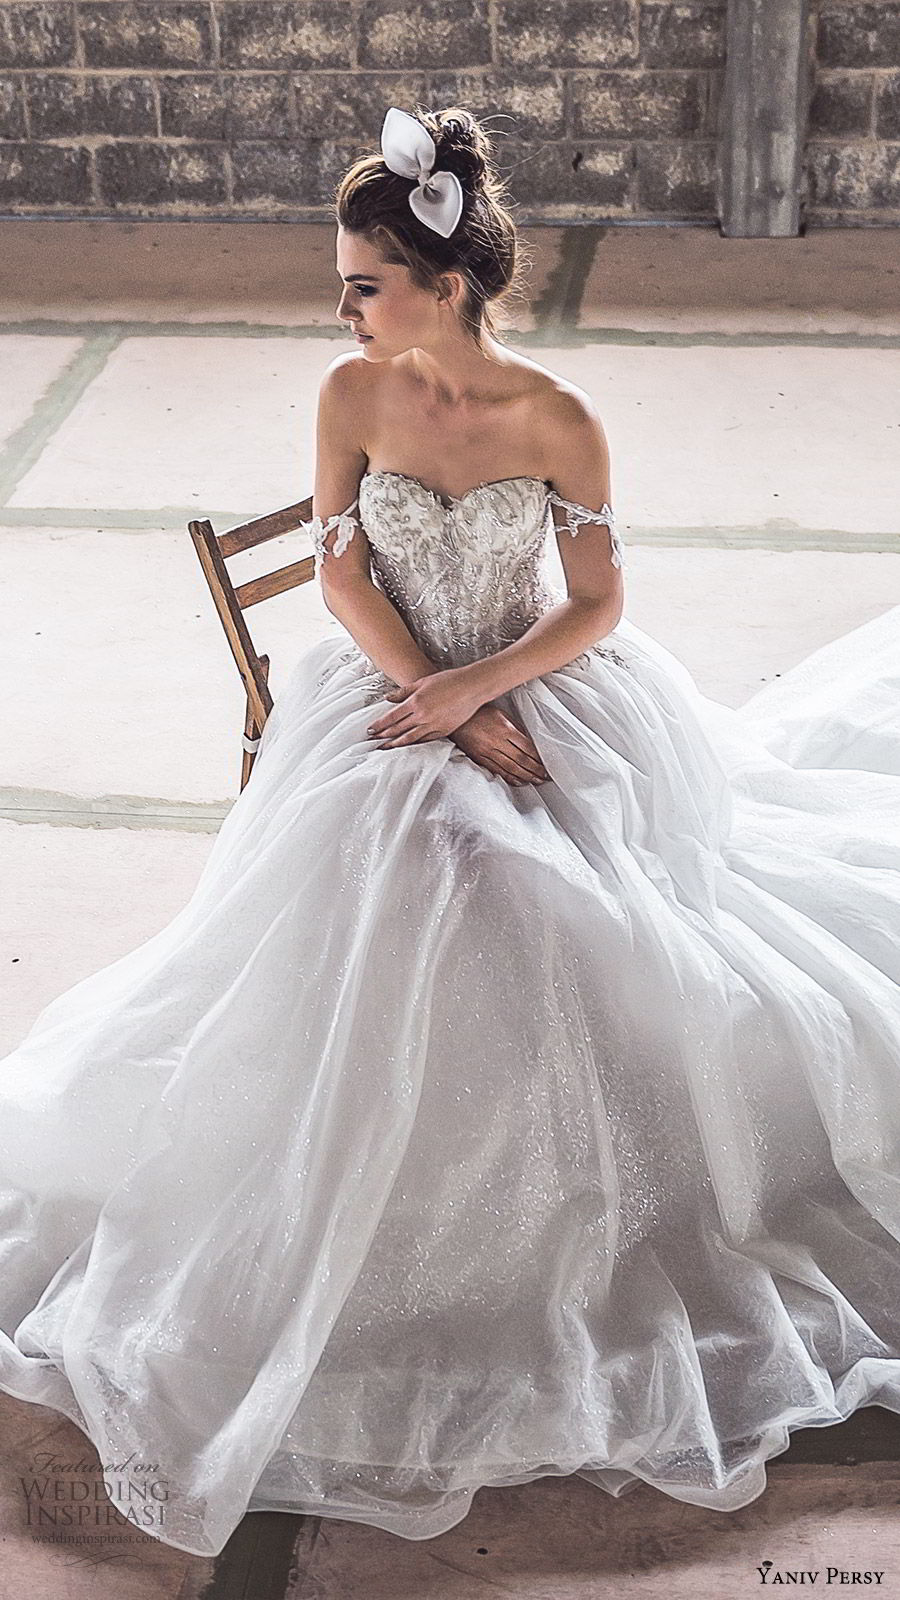 yaniv persy spring 2020 bridal couture off shoulder sweetheart embellished bodice a line ball gown wedding dress (5) cathedral train romantic princess mv